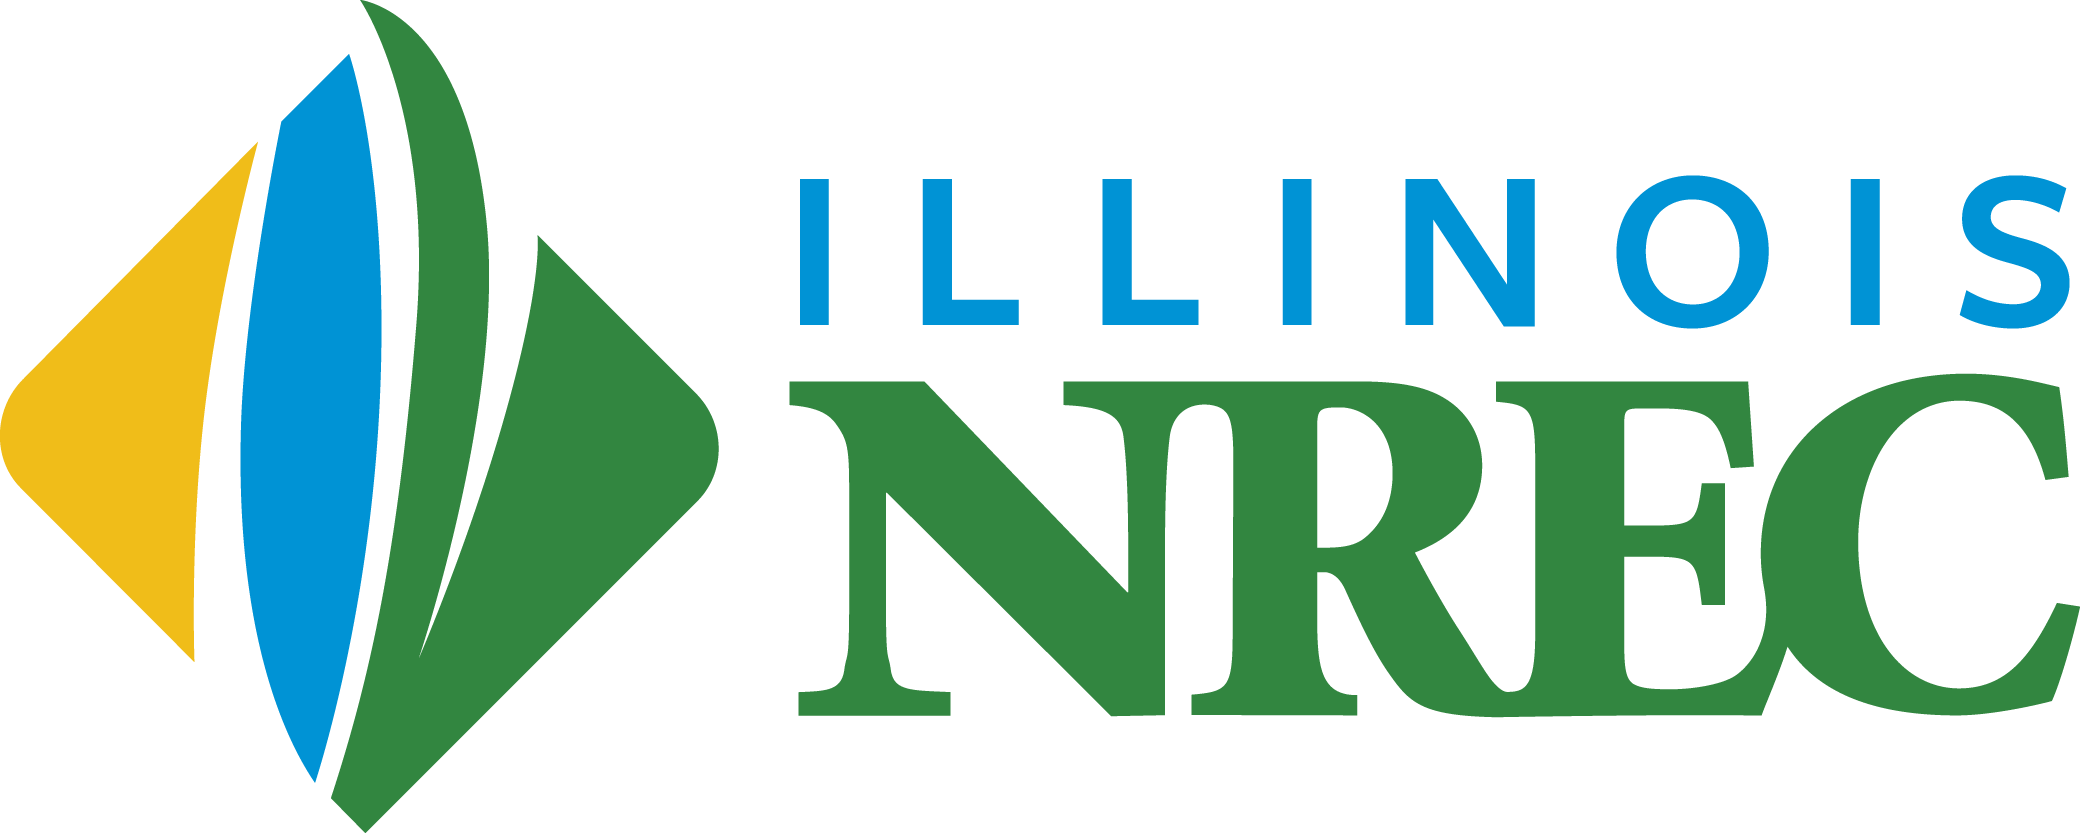 Illinois Nutrient Research & Education Council